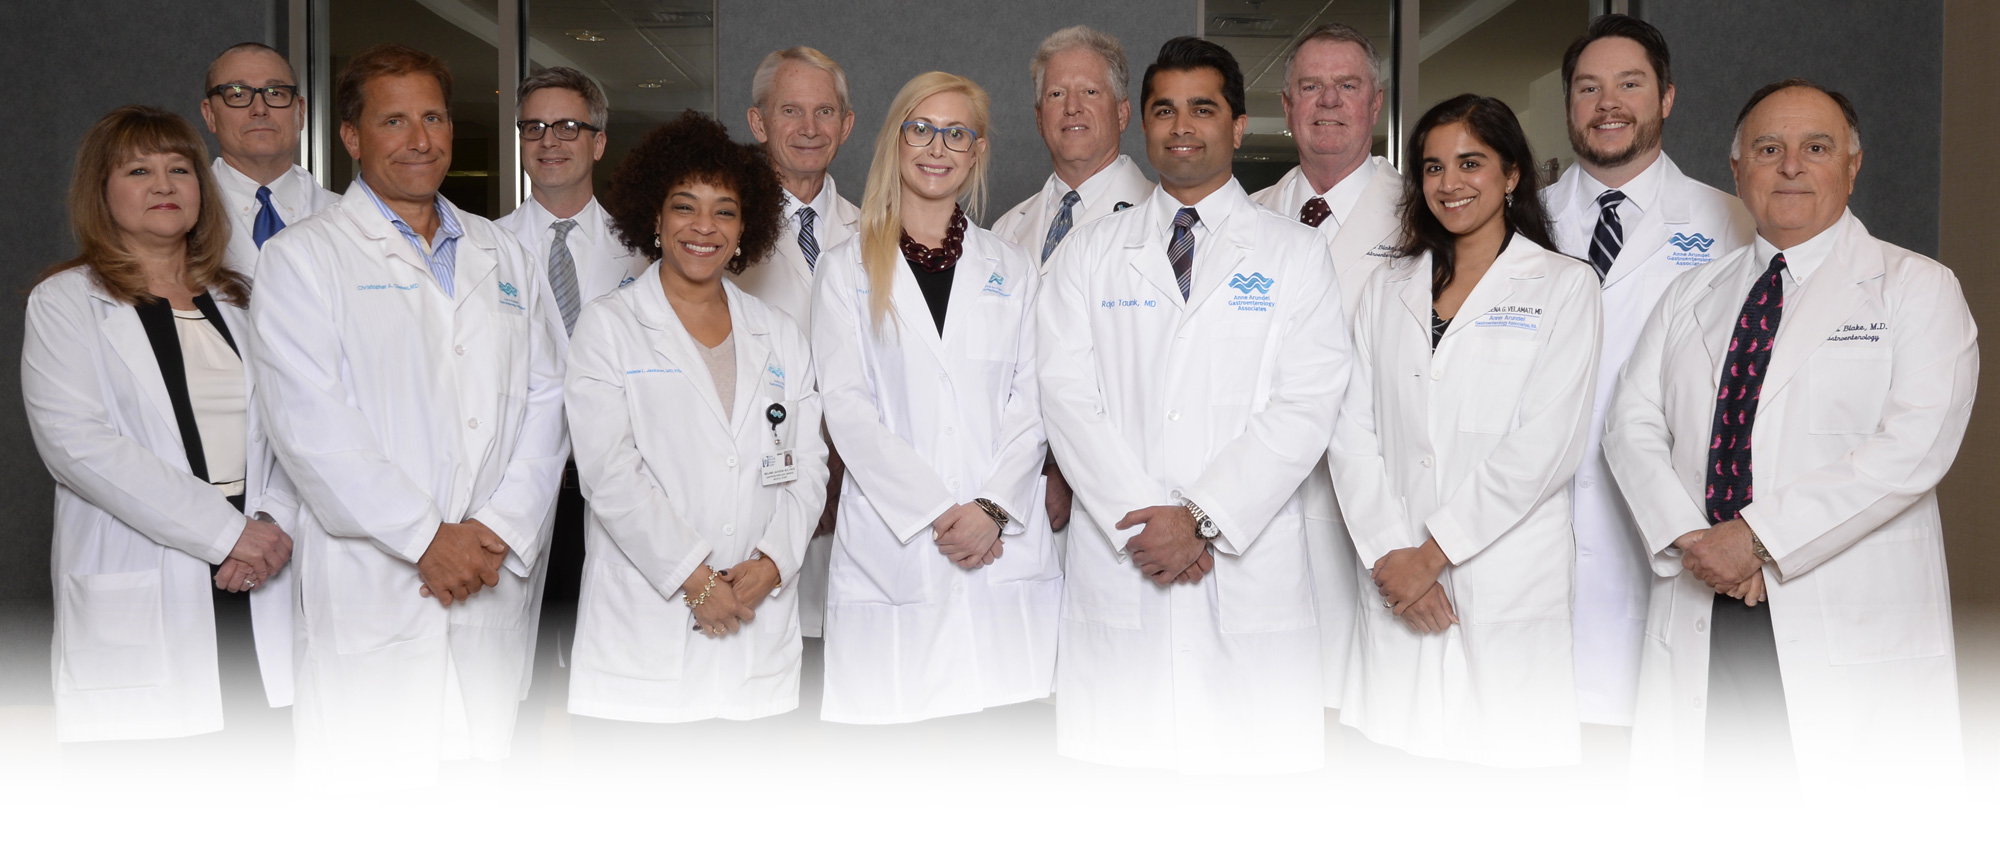 Anne Arundel Gastroenterology Associates